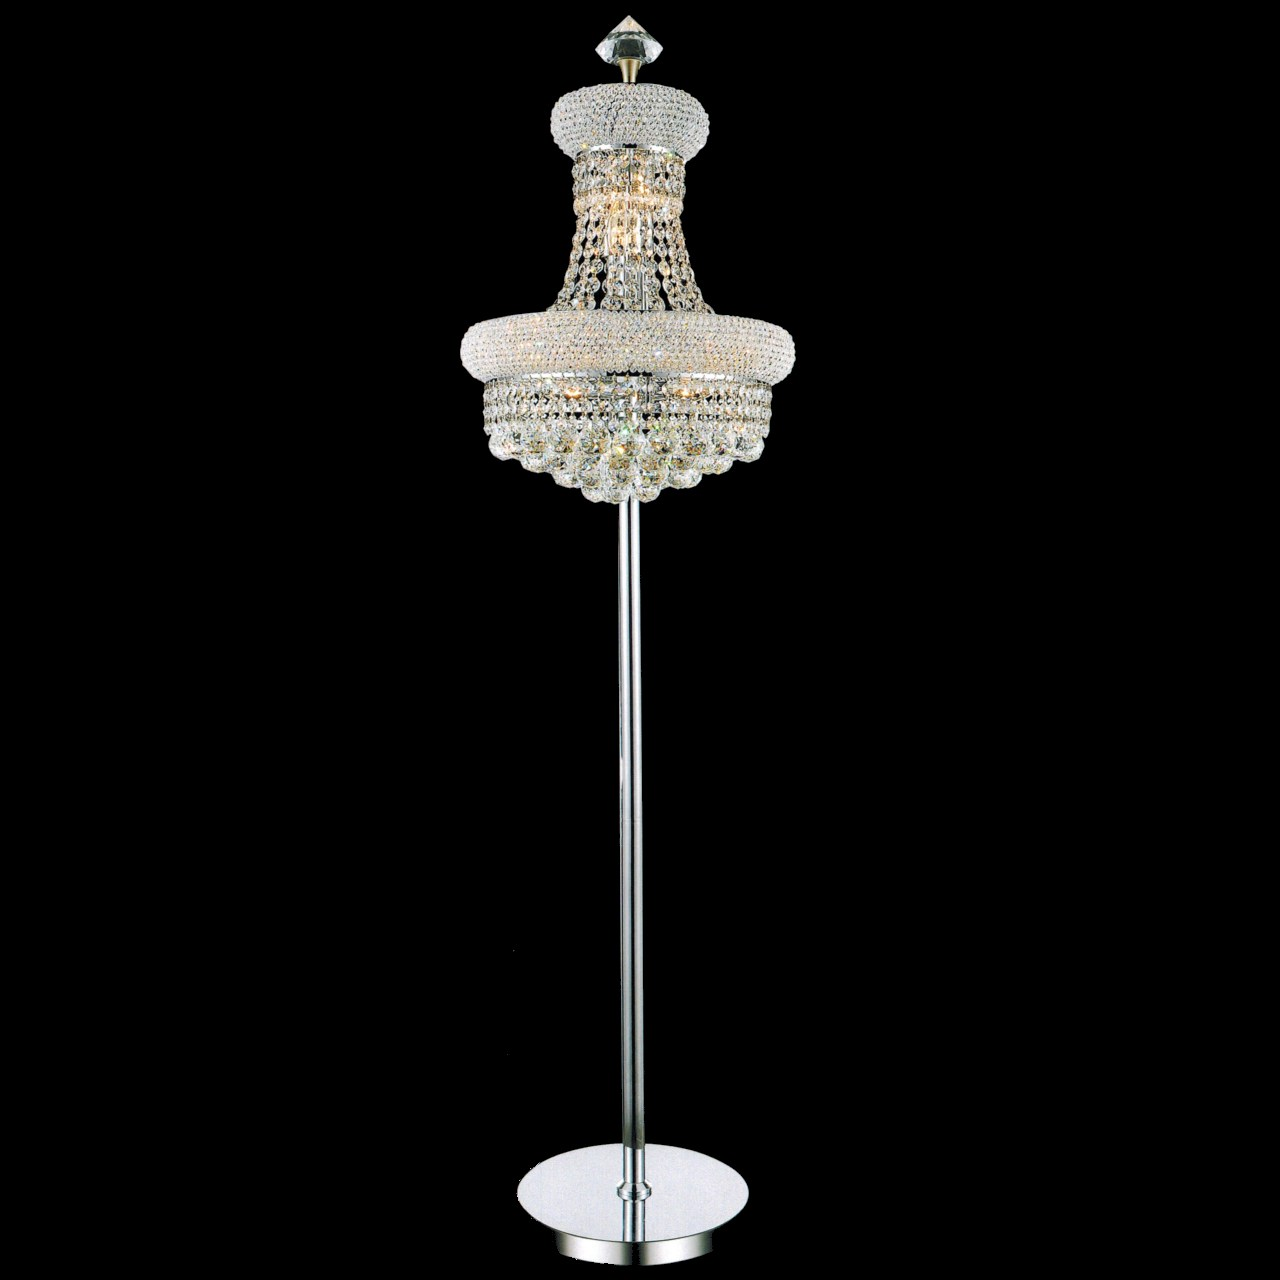 Brizzo Lighting Stores Empire Crystal Floor Lamp Chrome